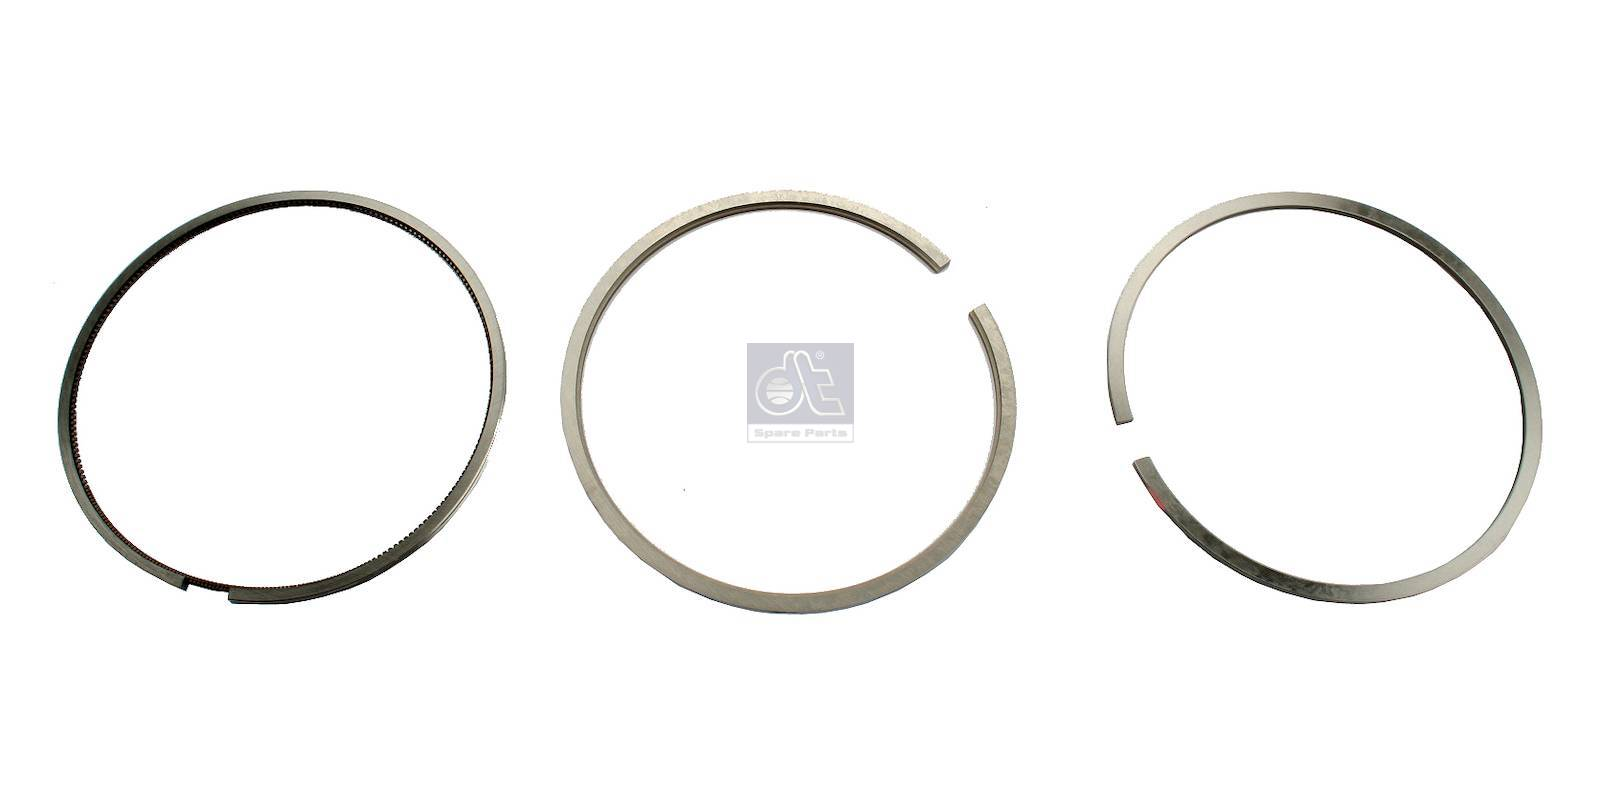 Dt 4 Piston Ring Kit Suitable For